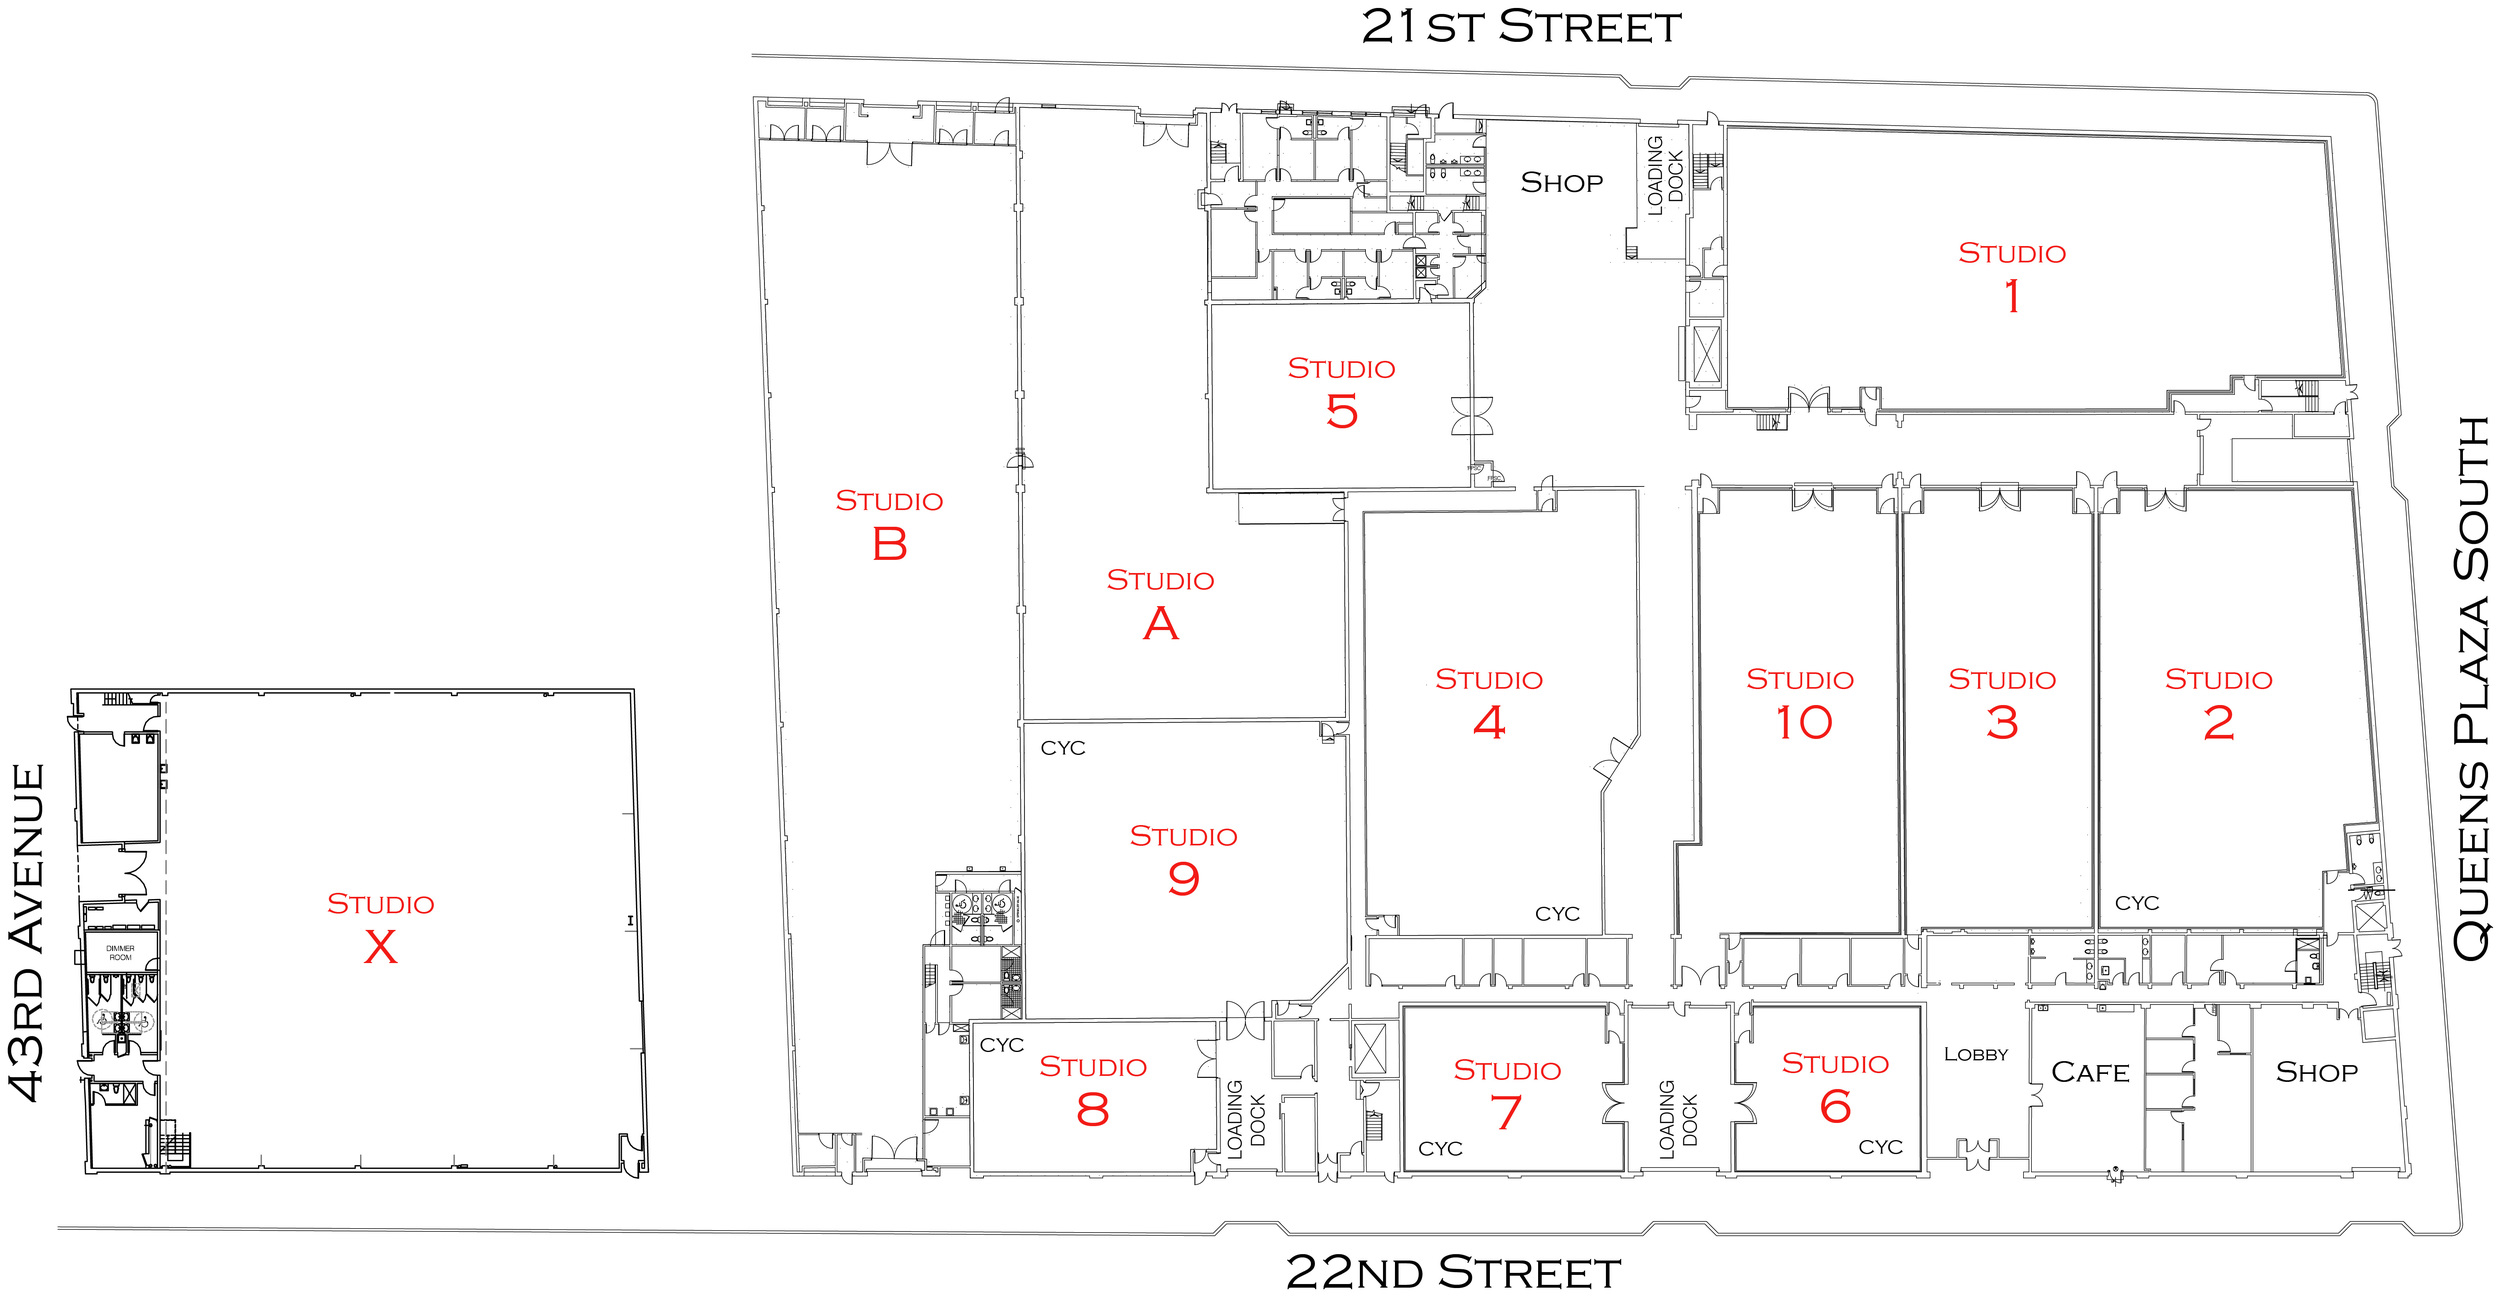 Silvercup Main Lot Floorplan:  *All information is subject to change. Silvercup Studios is not responsible for any errors or omissions.